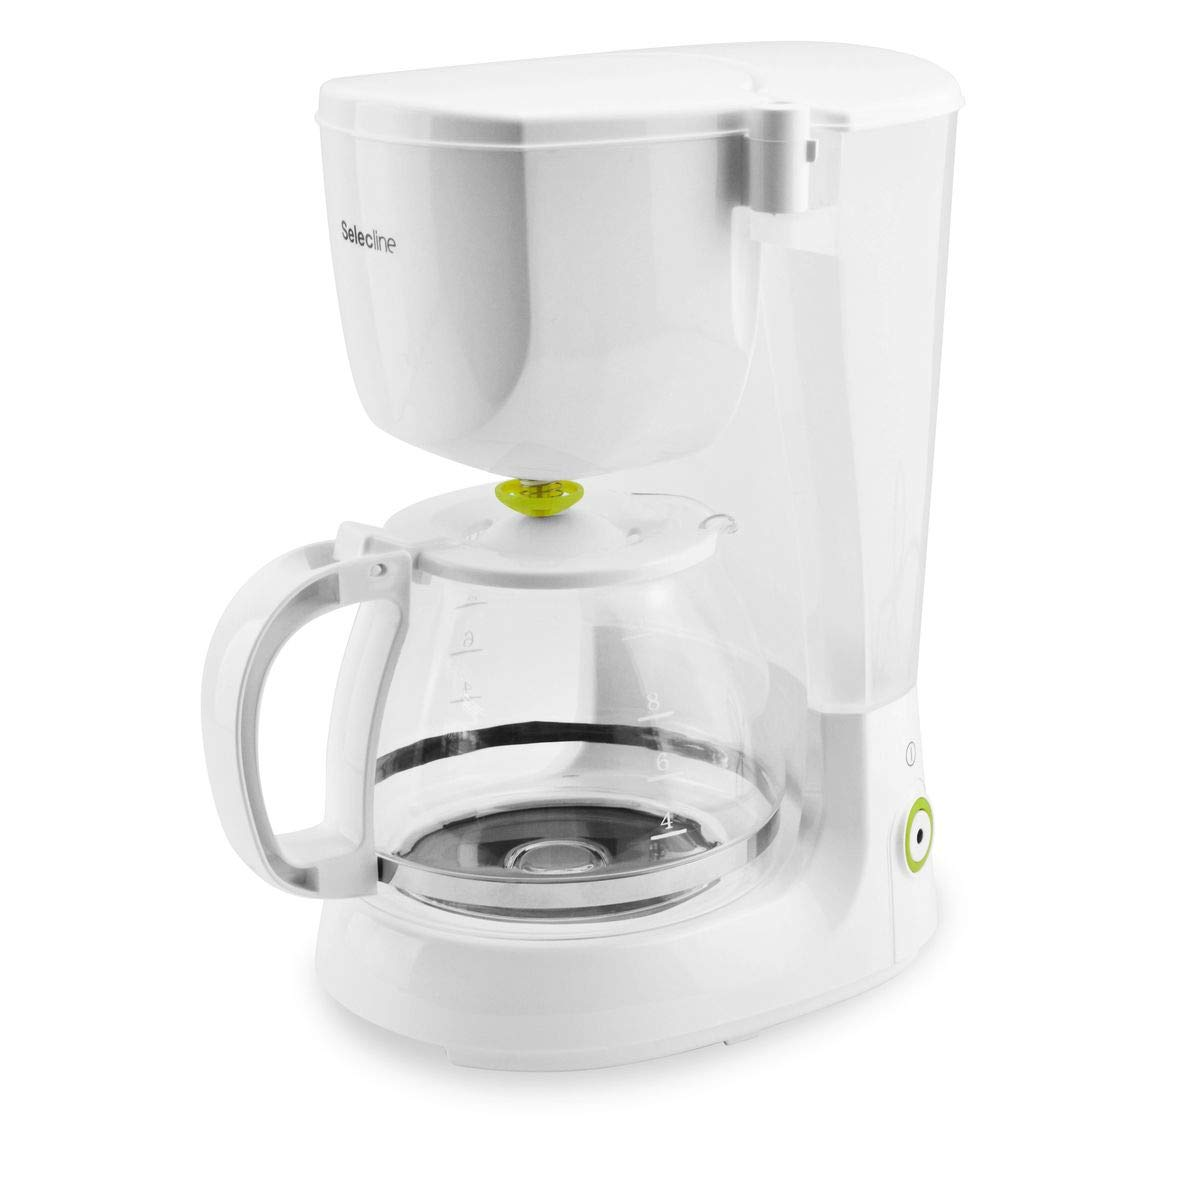 Selecline CM1090-GS Independiente Semi-automática - Cafetera ...